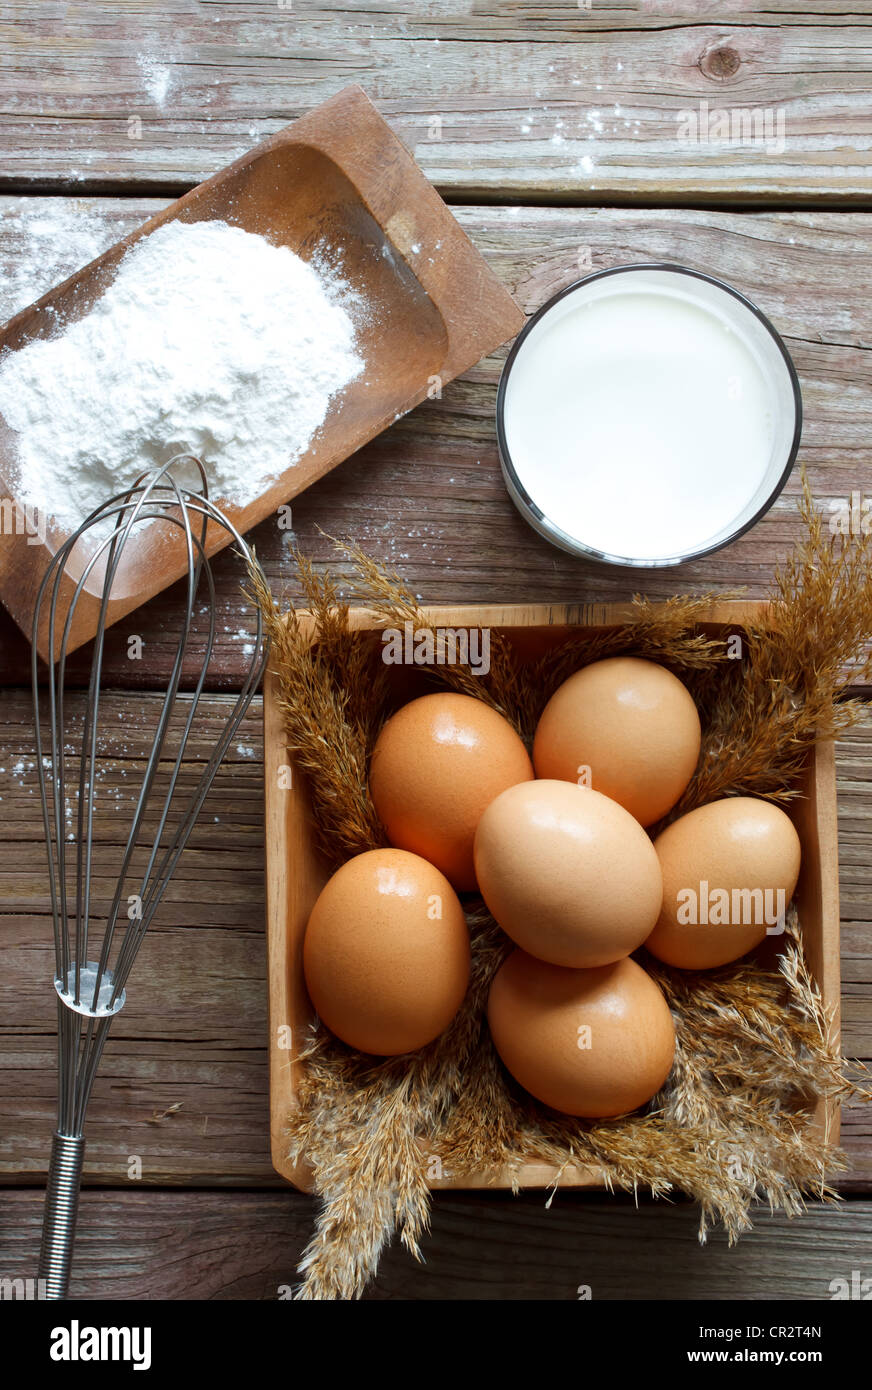 Eggs, flour, milk and whisk - Stock Image